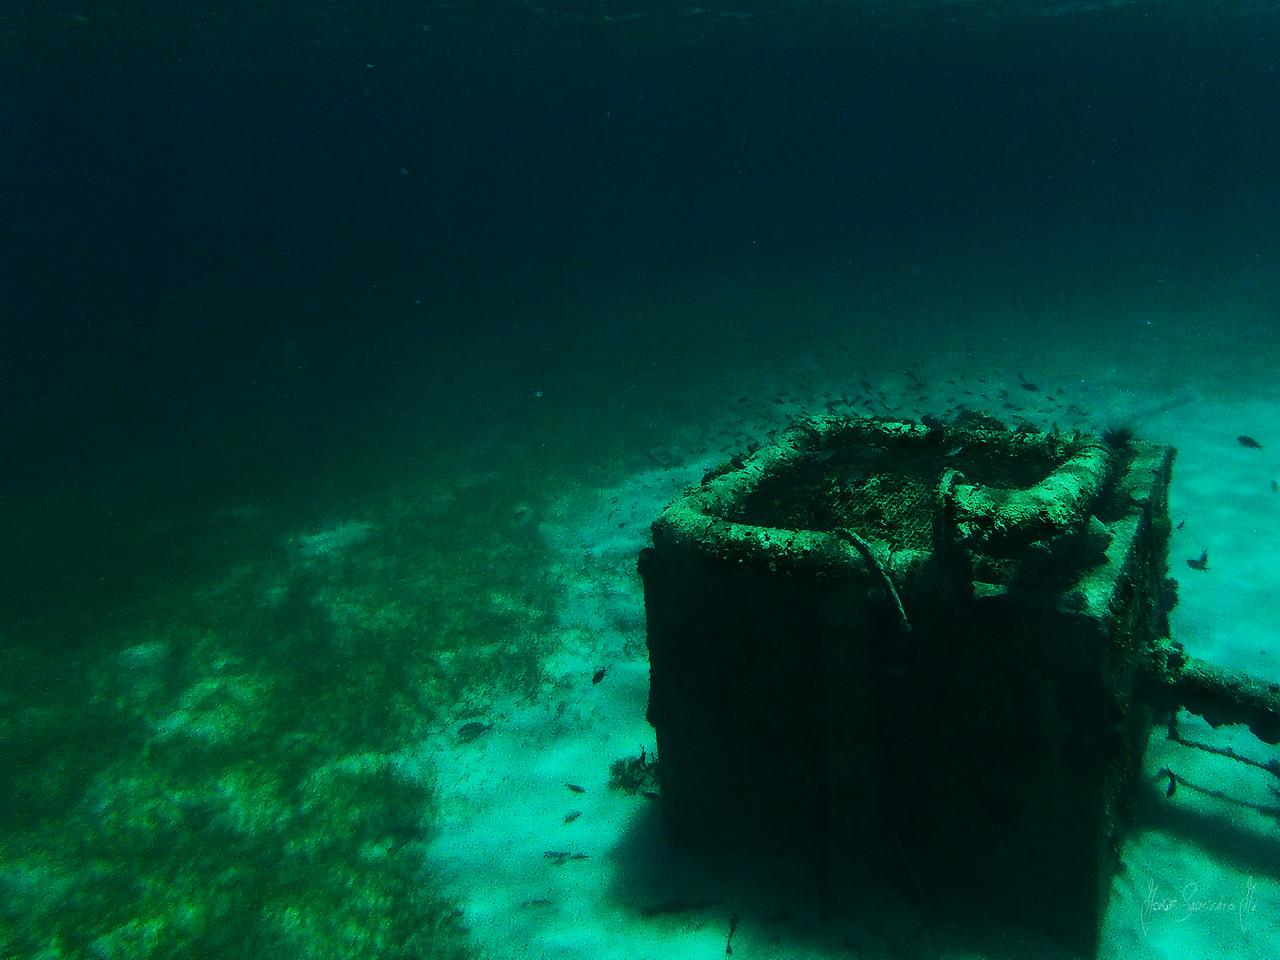 PIPES UNDERWATER